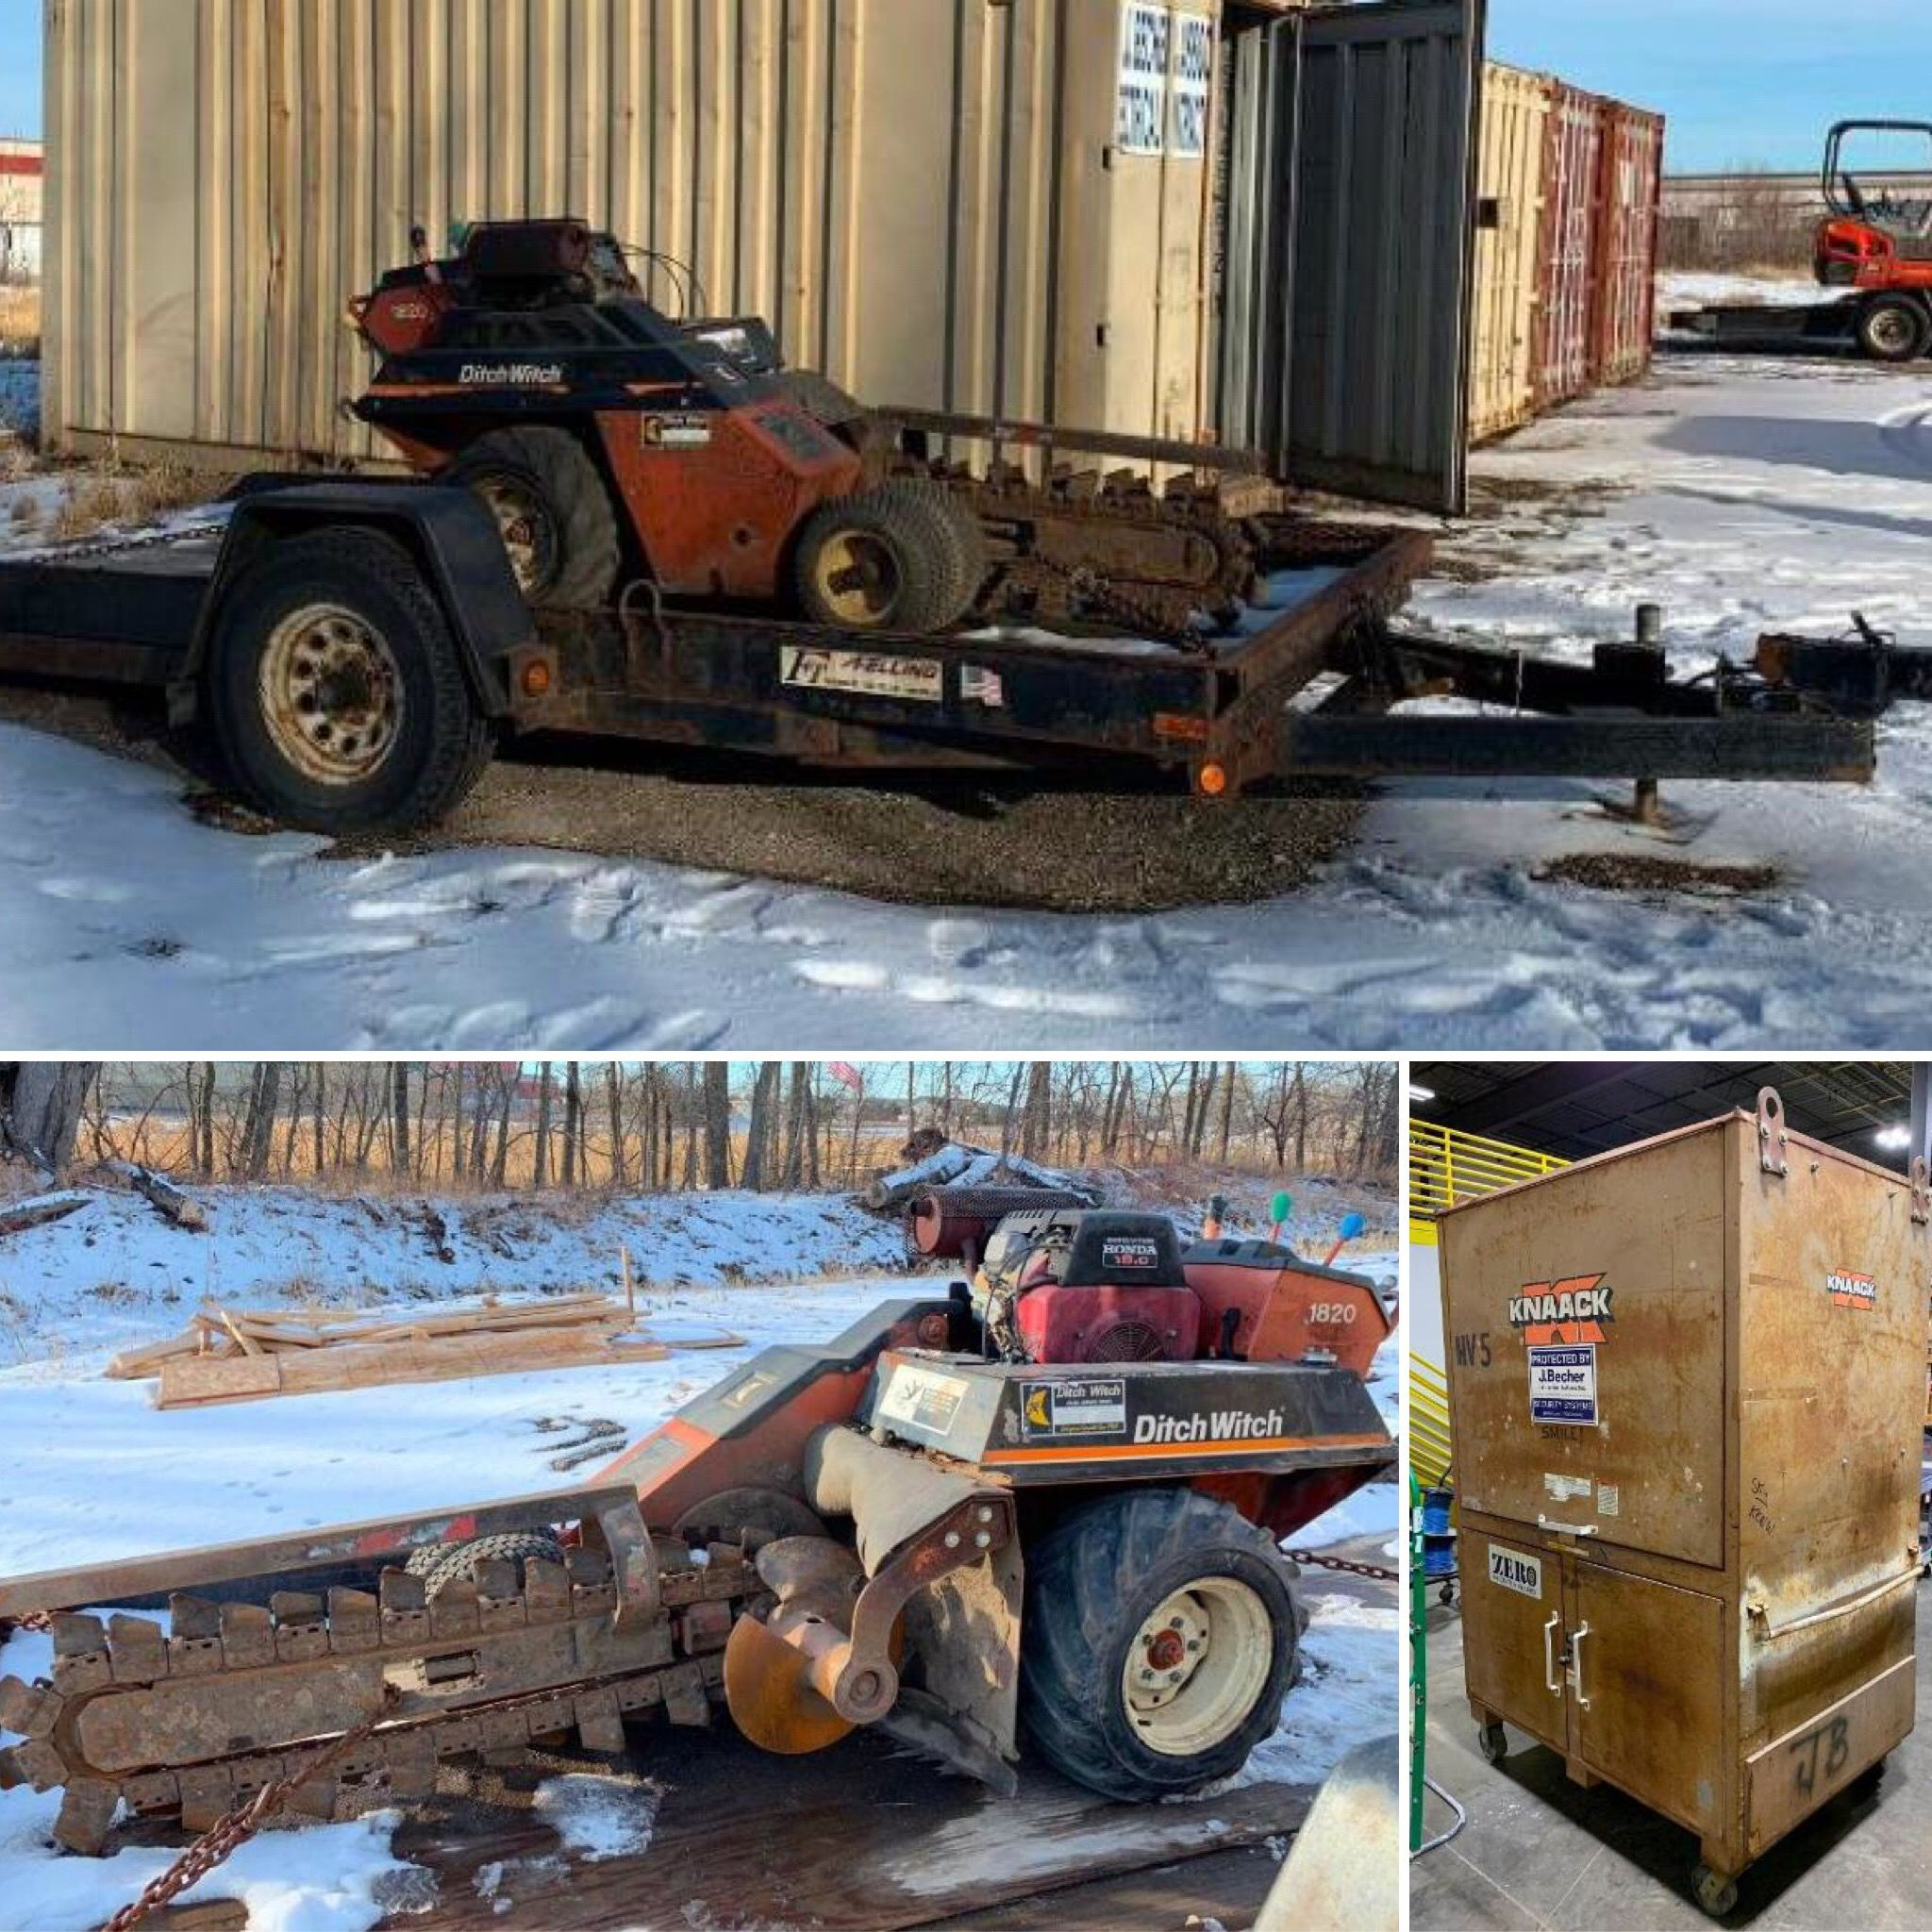 small resolution of auction complete check out this feller tilt trailer ditch witch 1820 and knaack gang box bid online today at www bid 2 buy com naapro auctionswork